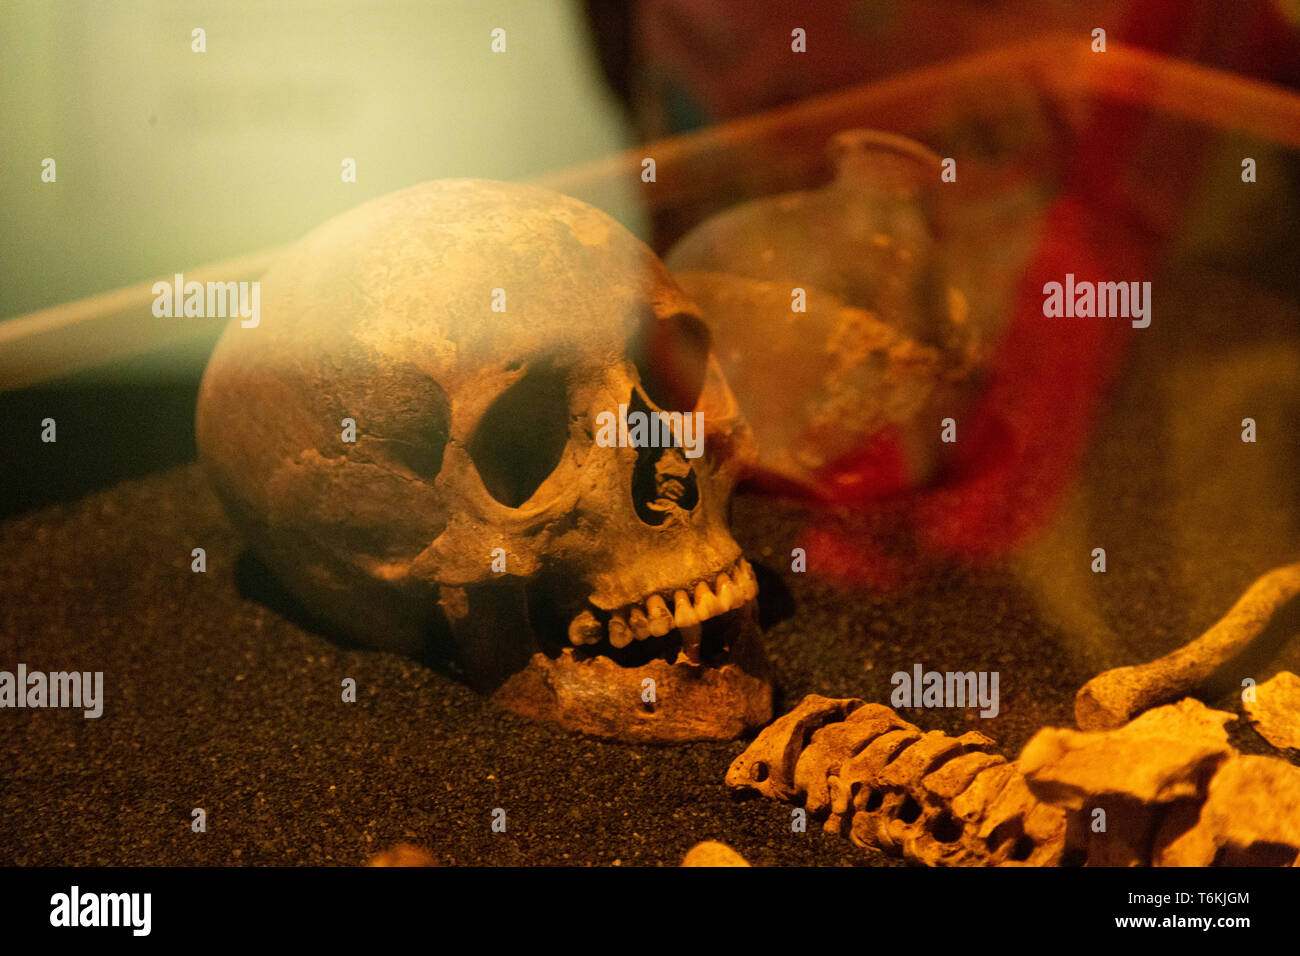 Human skull at the Roman Dead exhibition at the Museum of London Docklands. - Stock Image